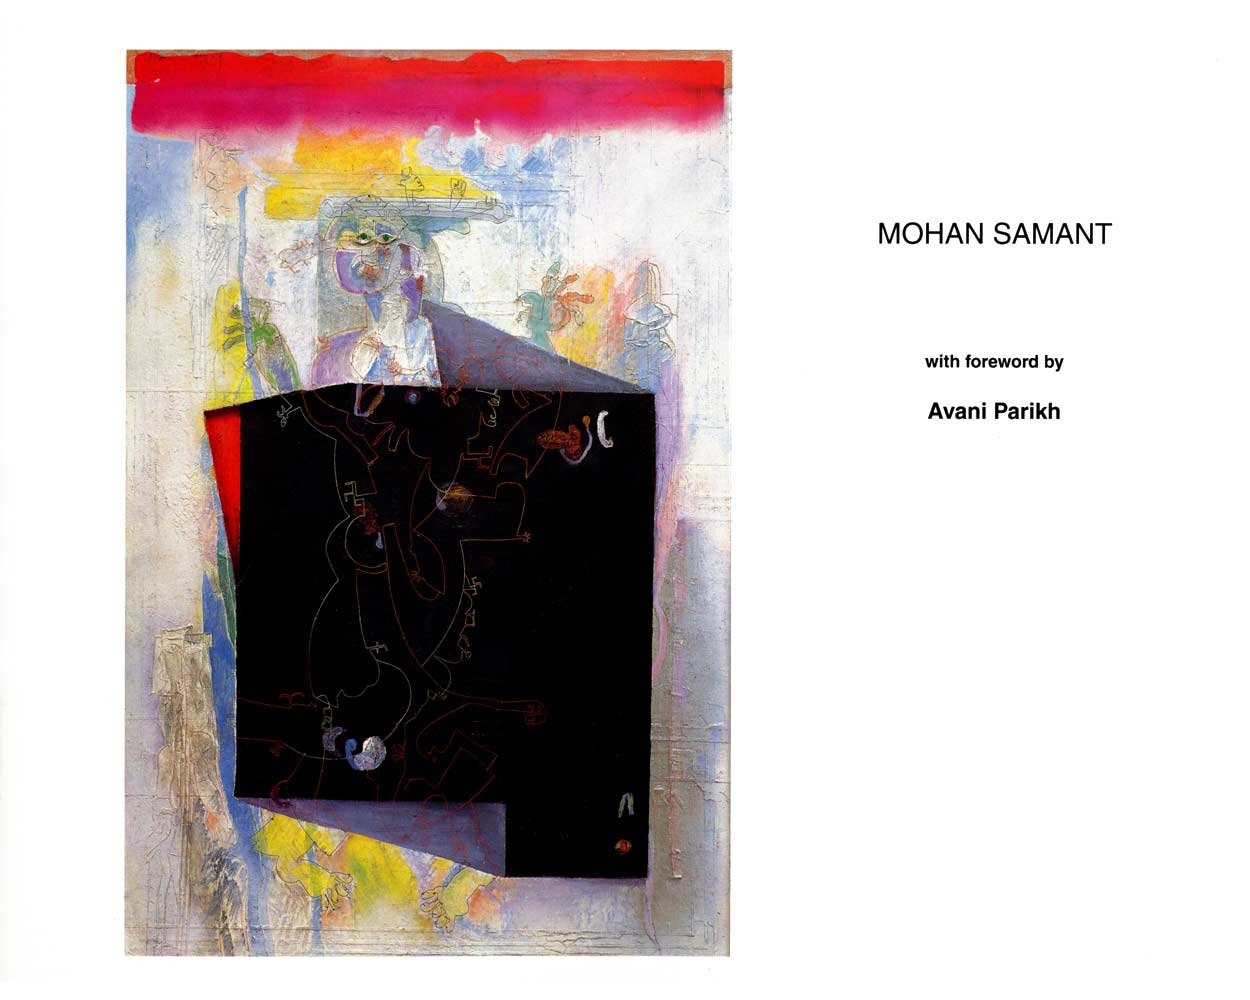 Mohan Samant, catalog, cover